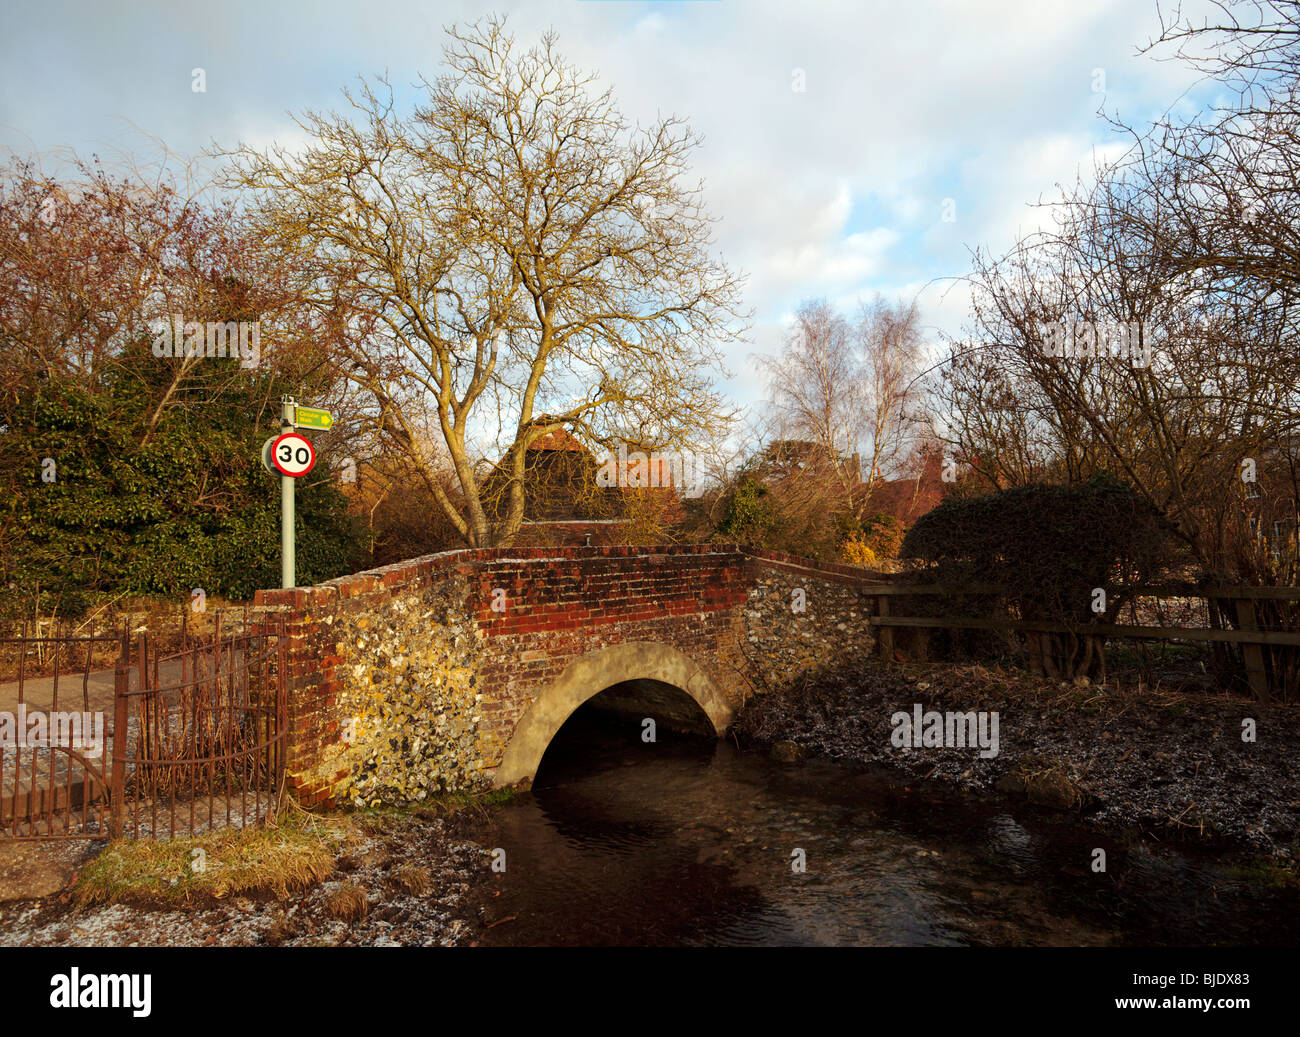 Hambleden Village bridge Buckinghamshire England UK - Stock Image